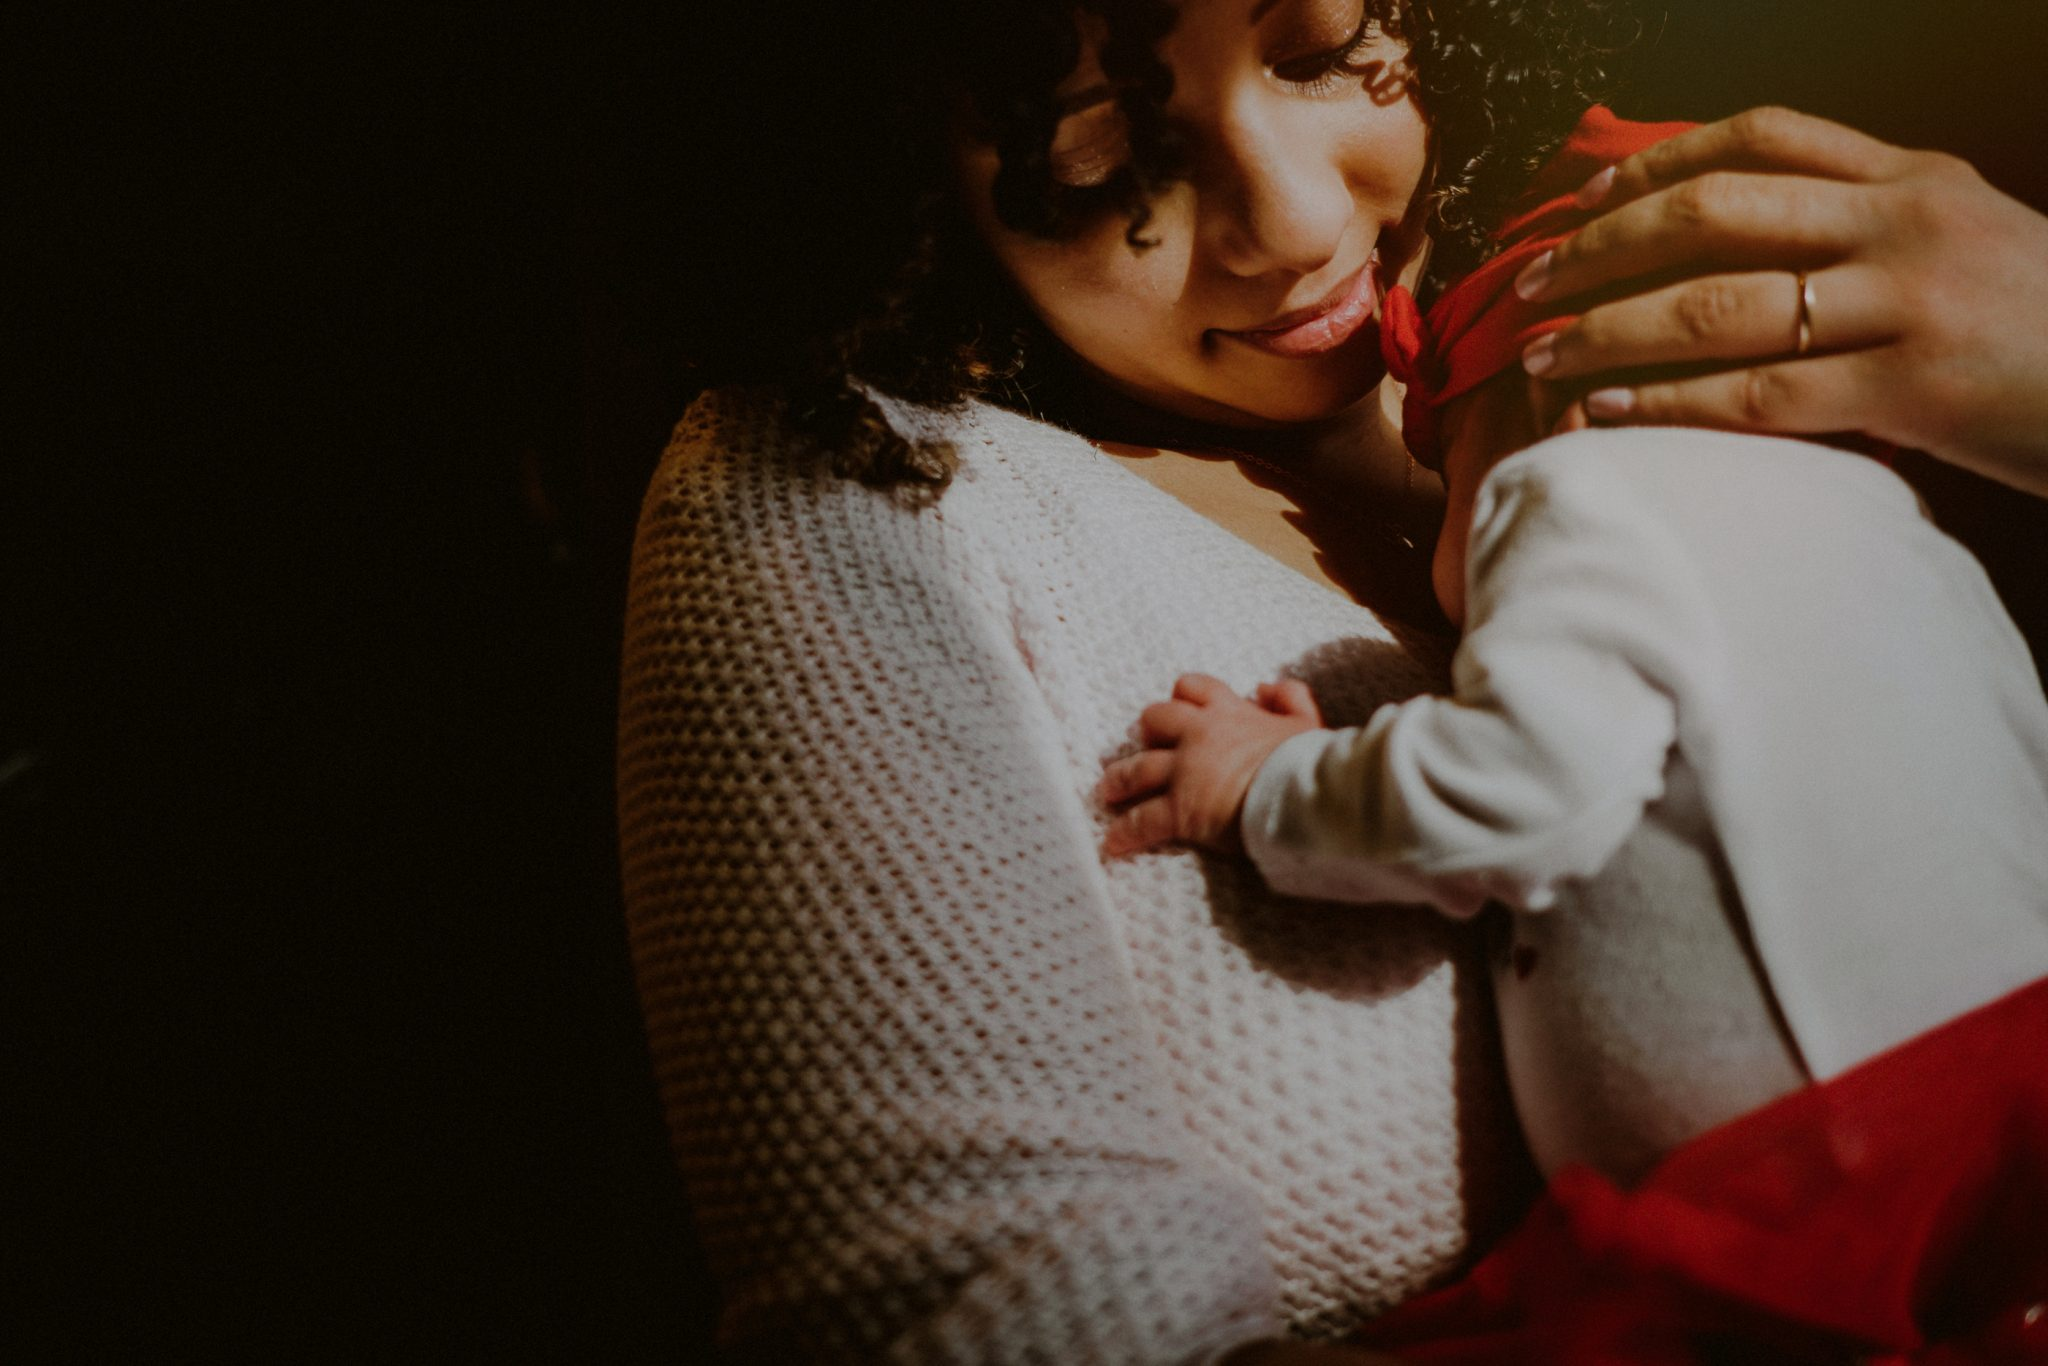 emotional photo of mother holding daughter in harsh light by window